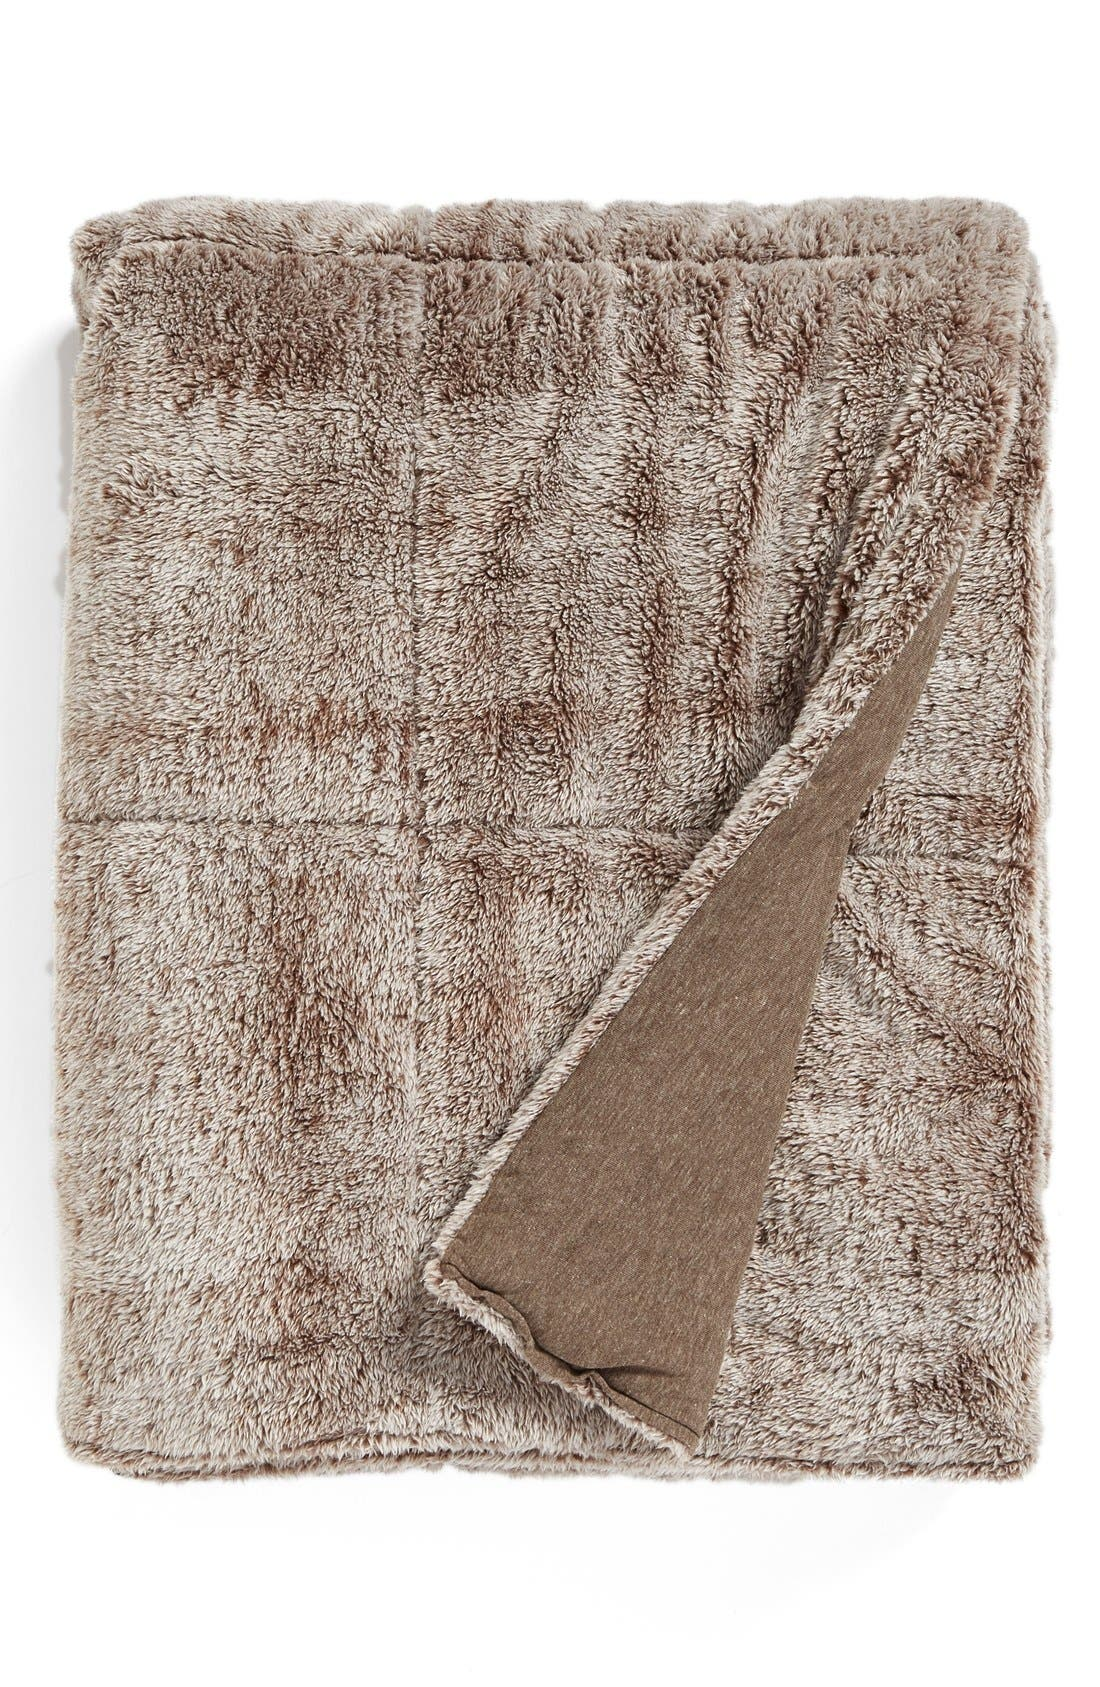 'Frosted' Throw,                         Main,                         color, Brown/ Brown